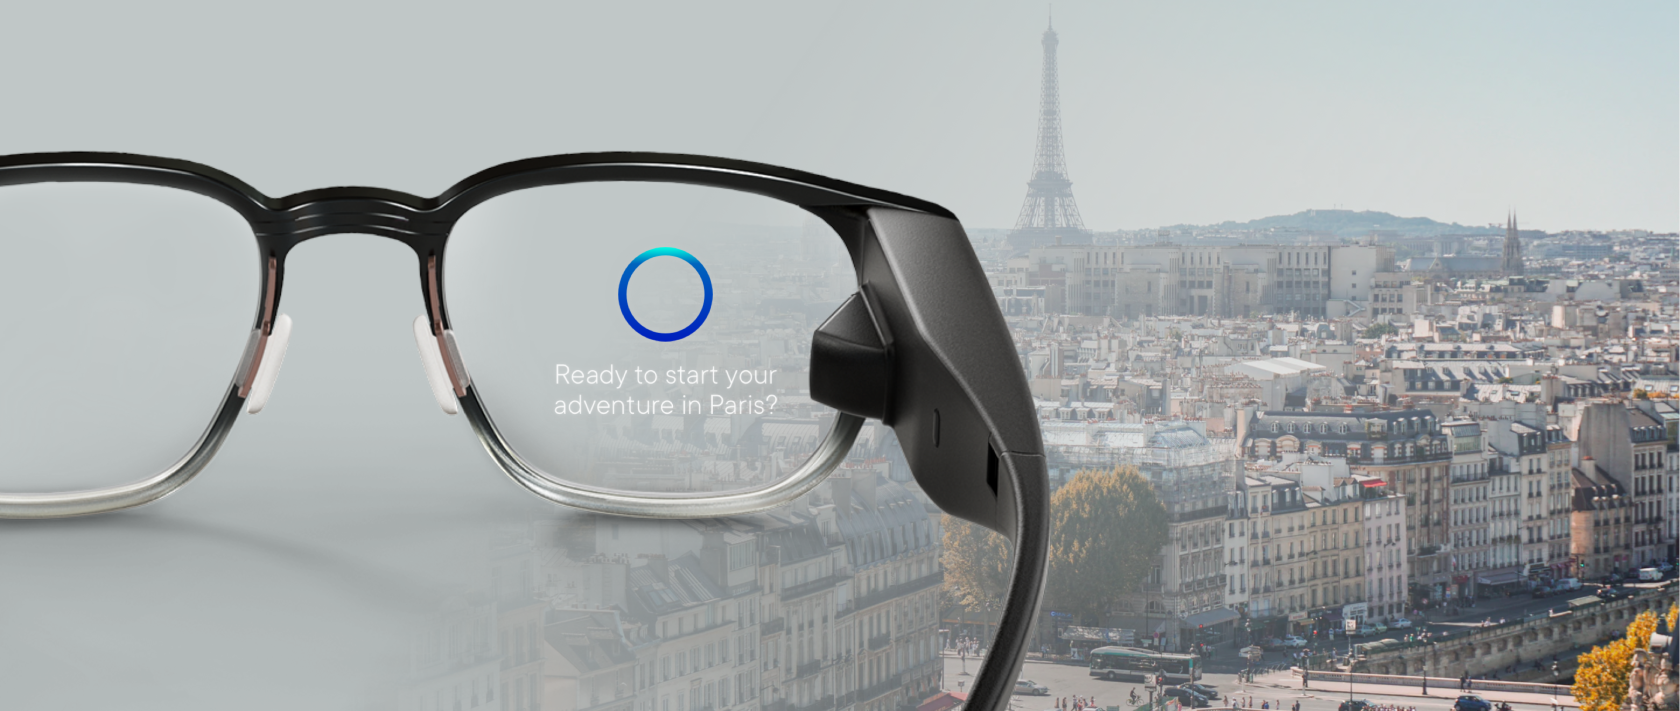 The smart glasses with